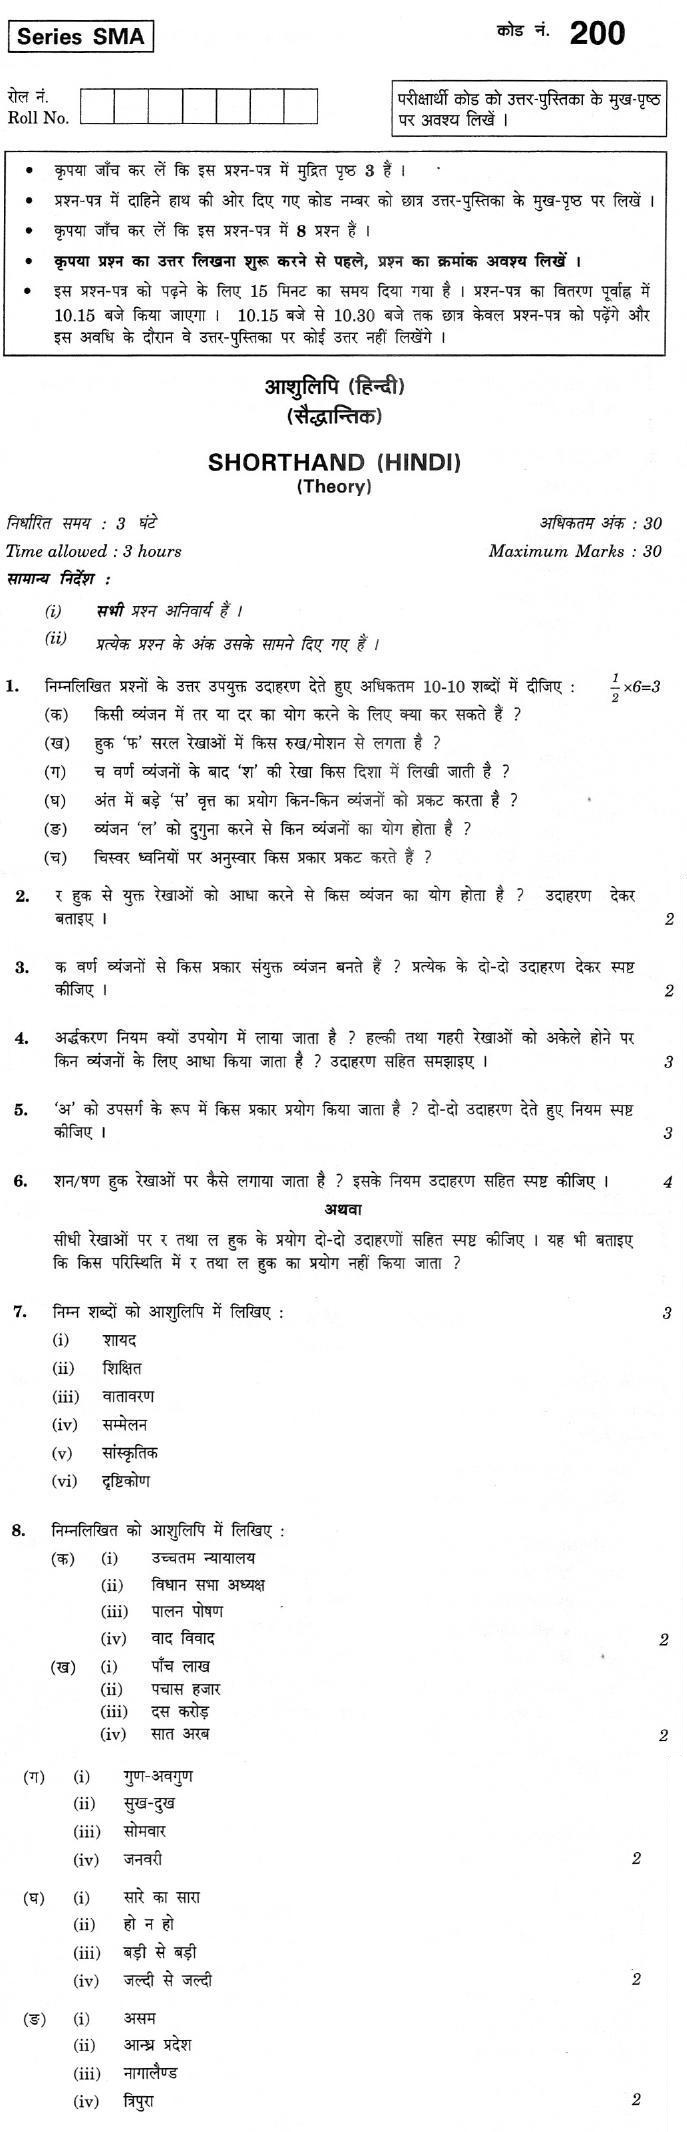 CBSE Class XII Previous Year Question Paper 2012 Shorthand (Hindi)